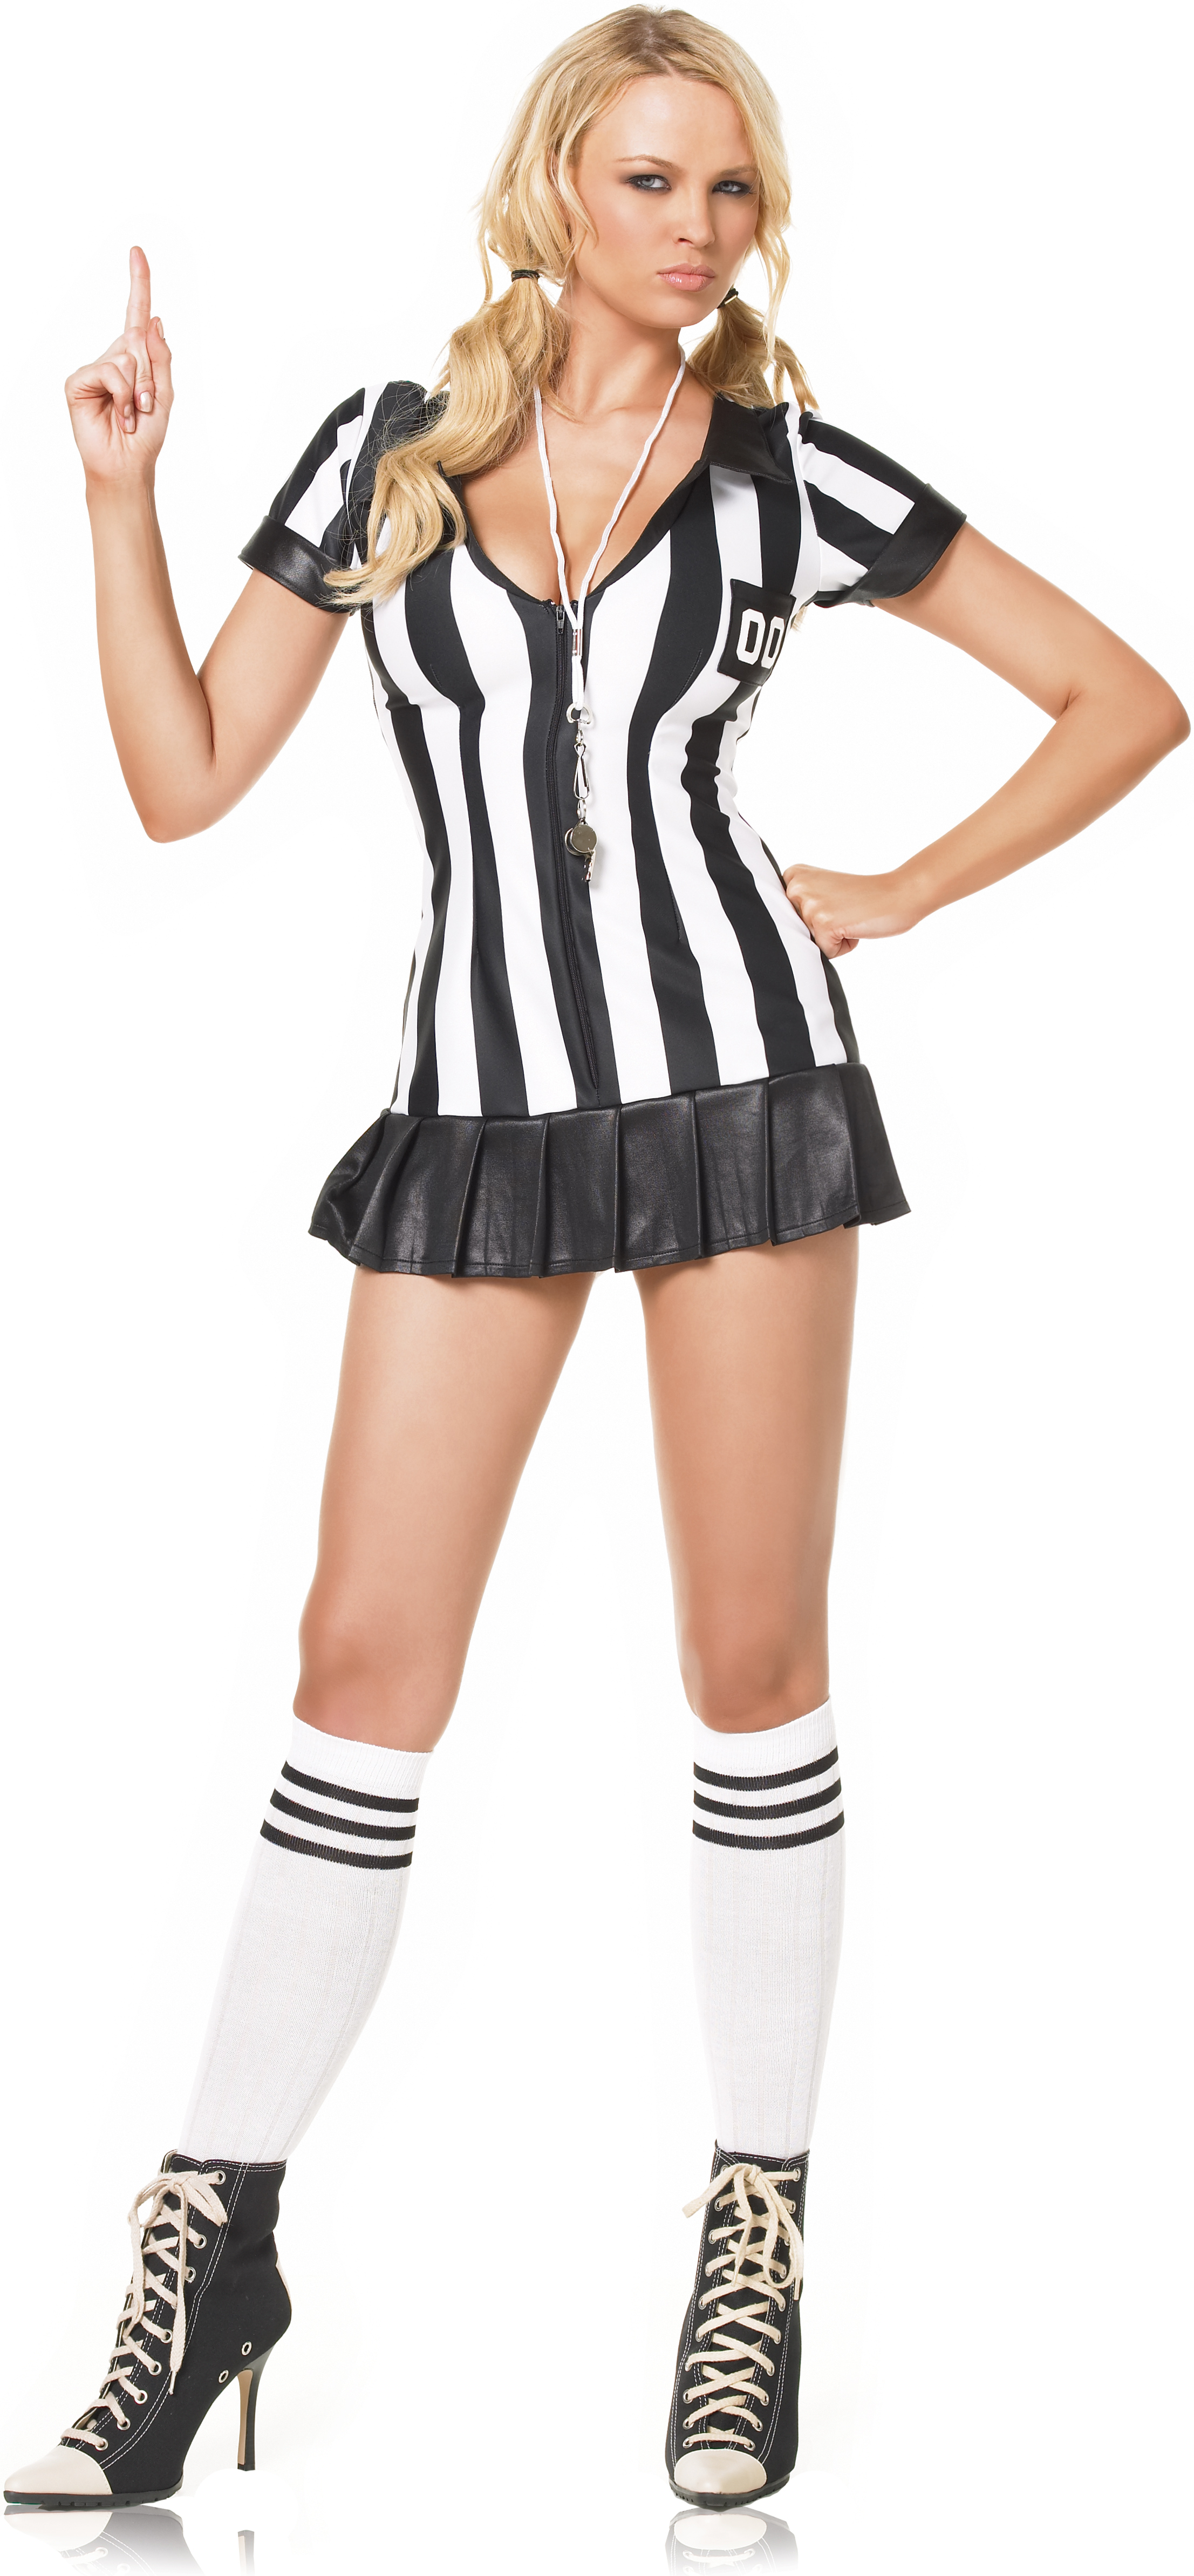 Pleated Penalizer Referee Adult Costume